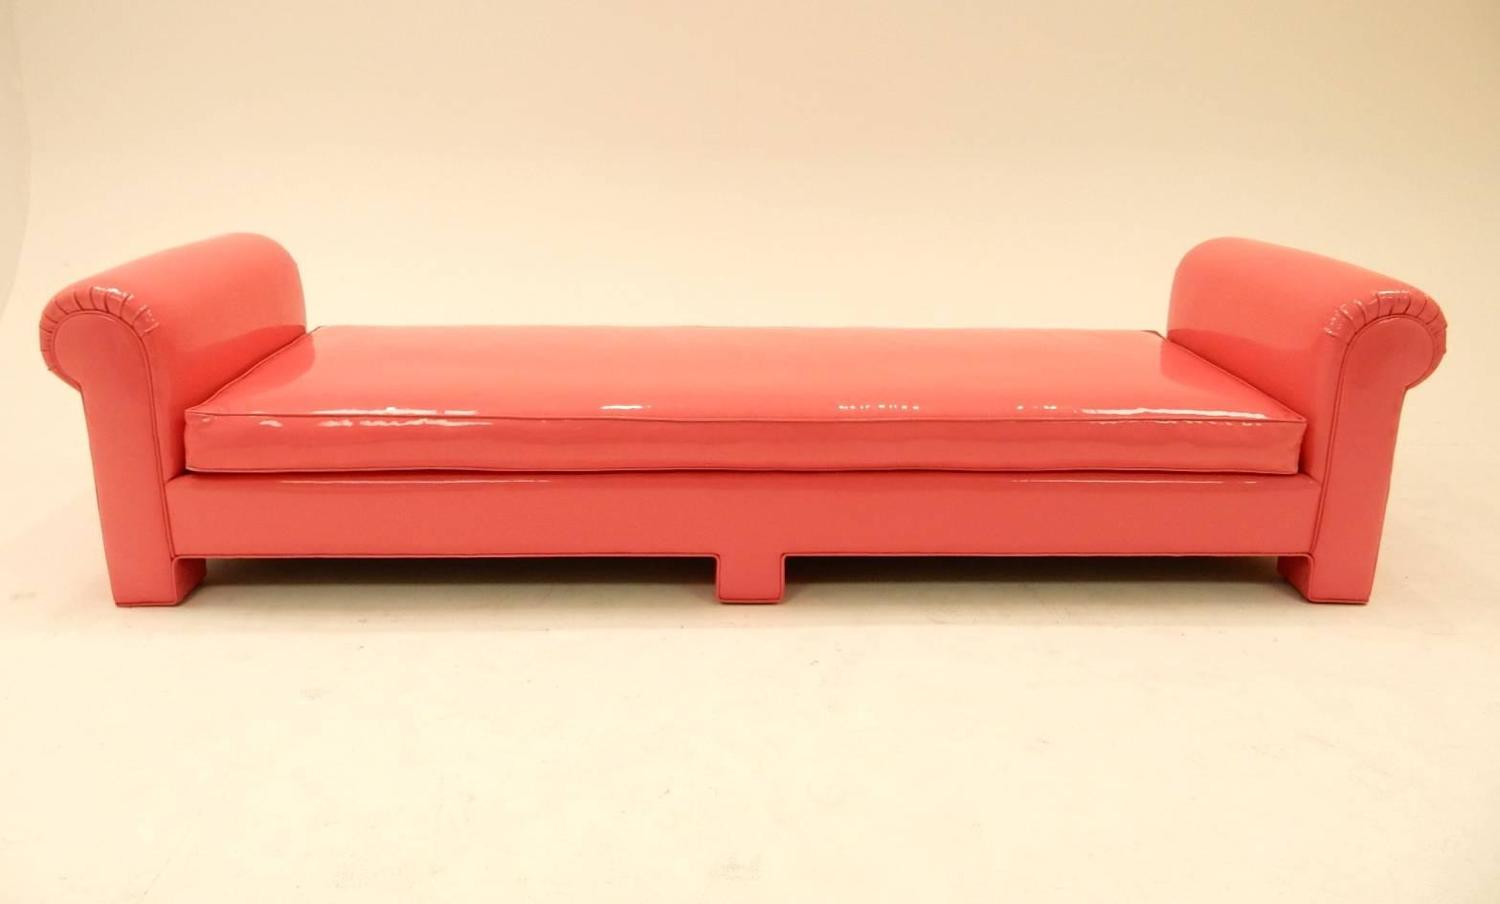 1974 Backless Sofa In Pink Naugahyde By California Furniture For Sale At 1stdibs